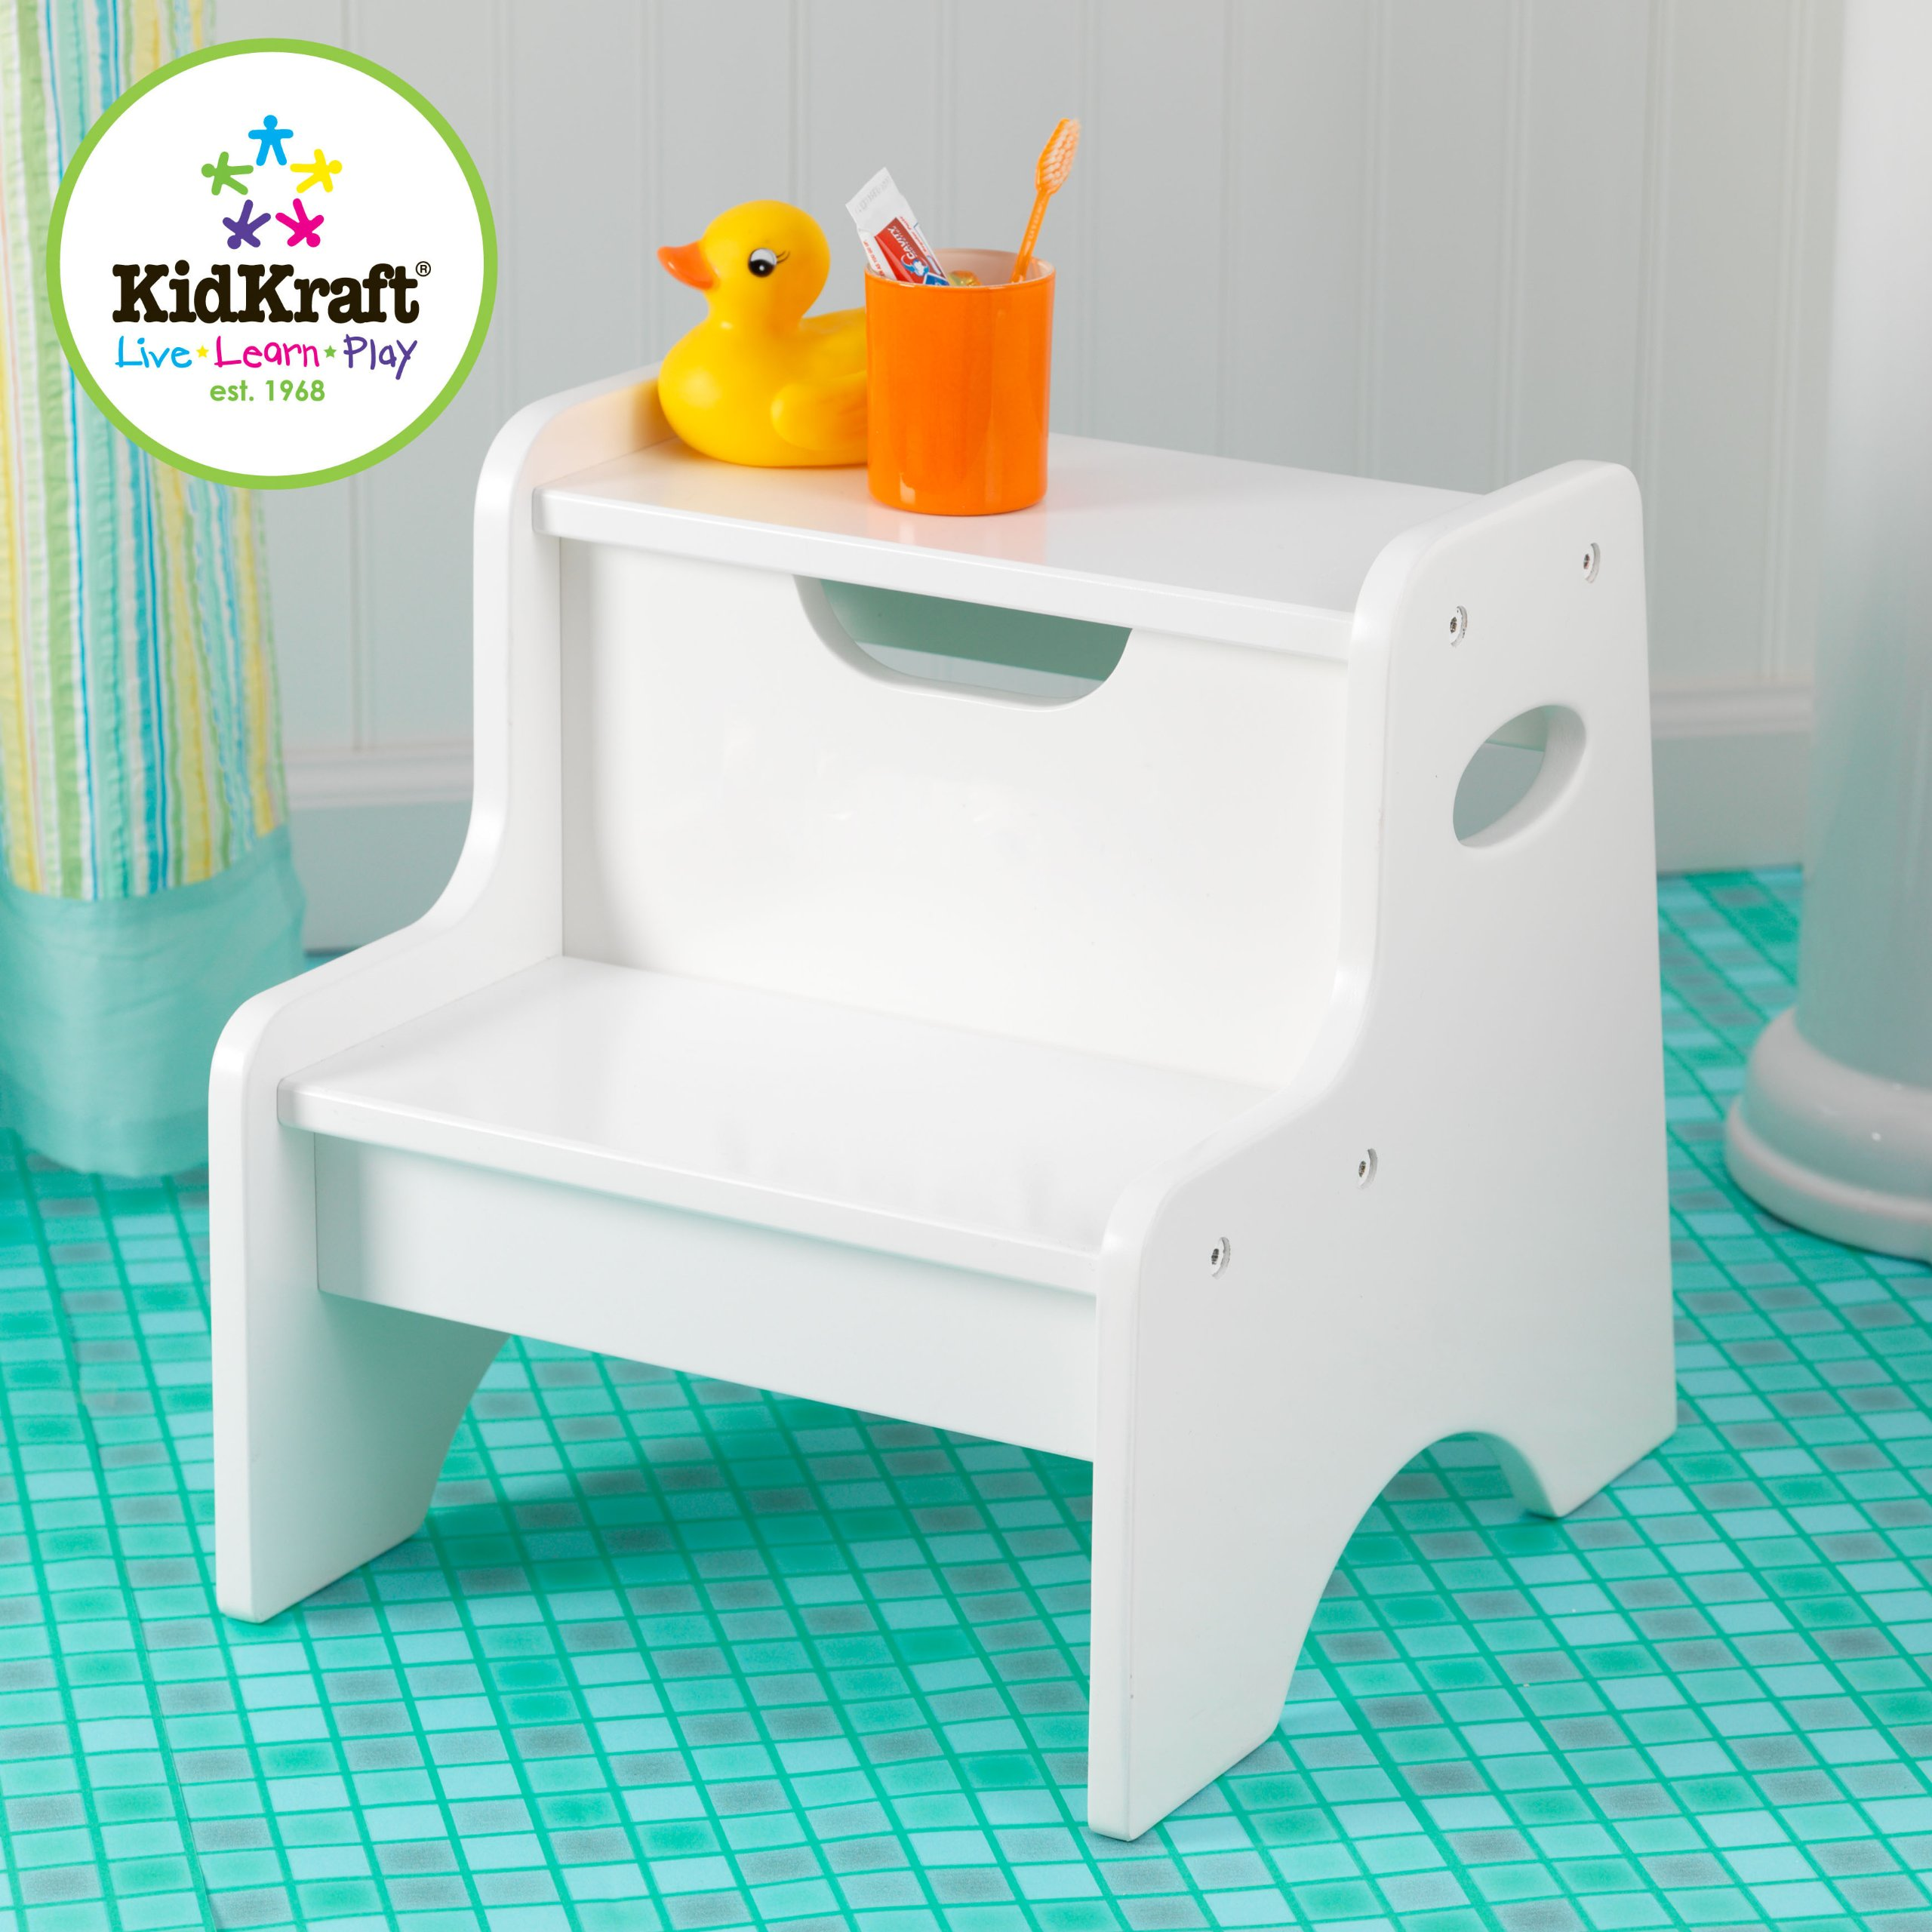 KidKraft Wooden Two Step Children's Stool with Handles- White by KidKraft